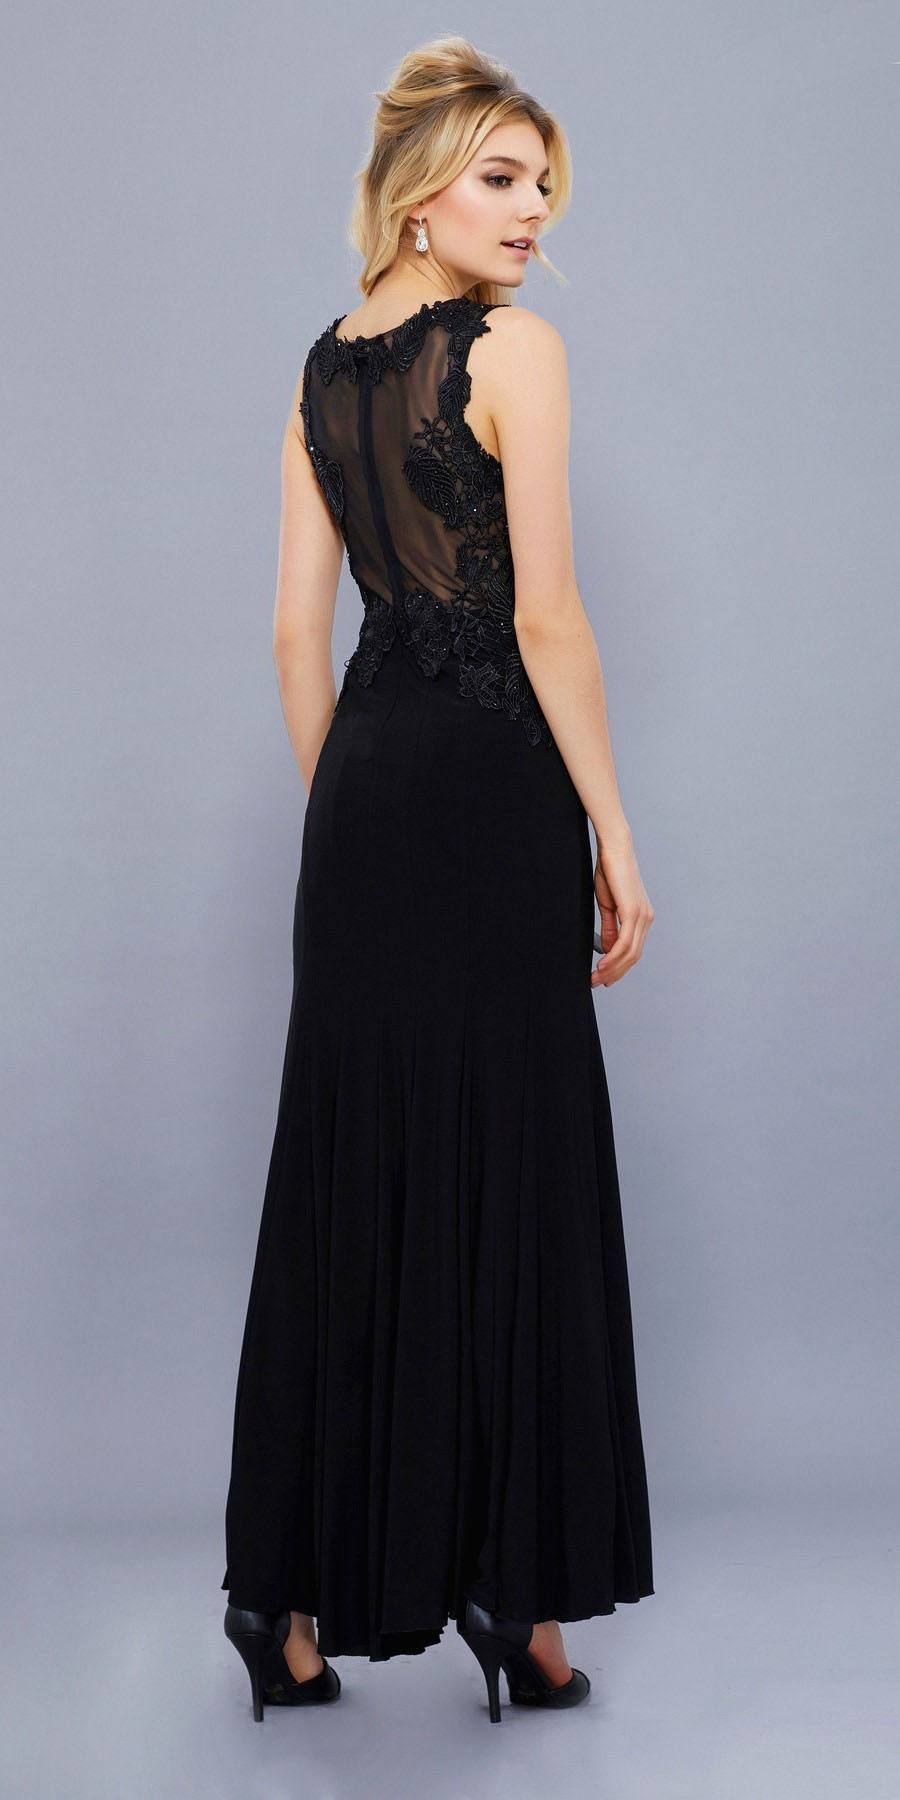 Black Jersey V-Neck Fit and Flare Formal Gown with Lace Accent